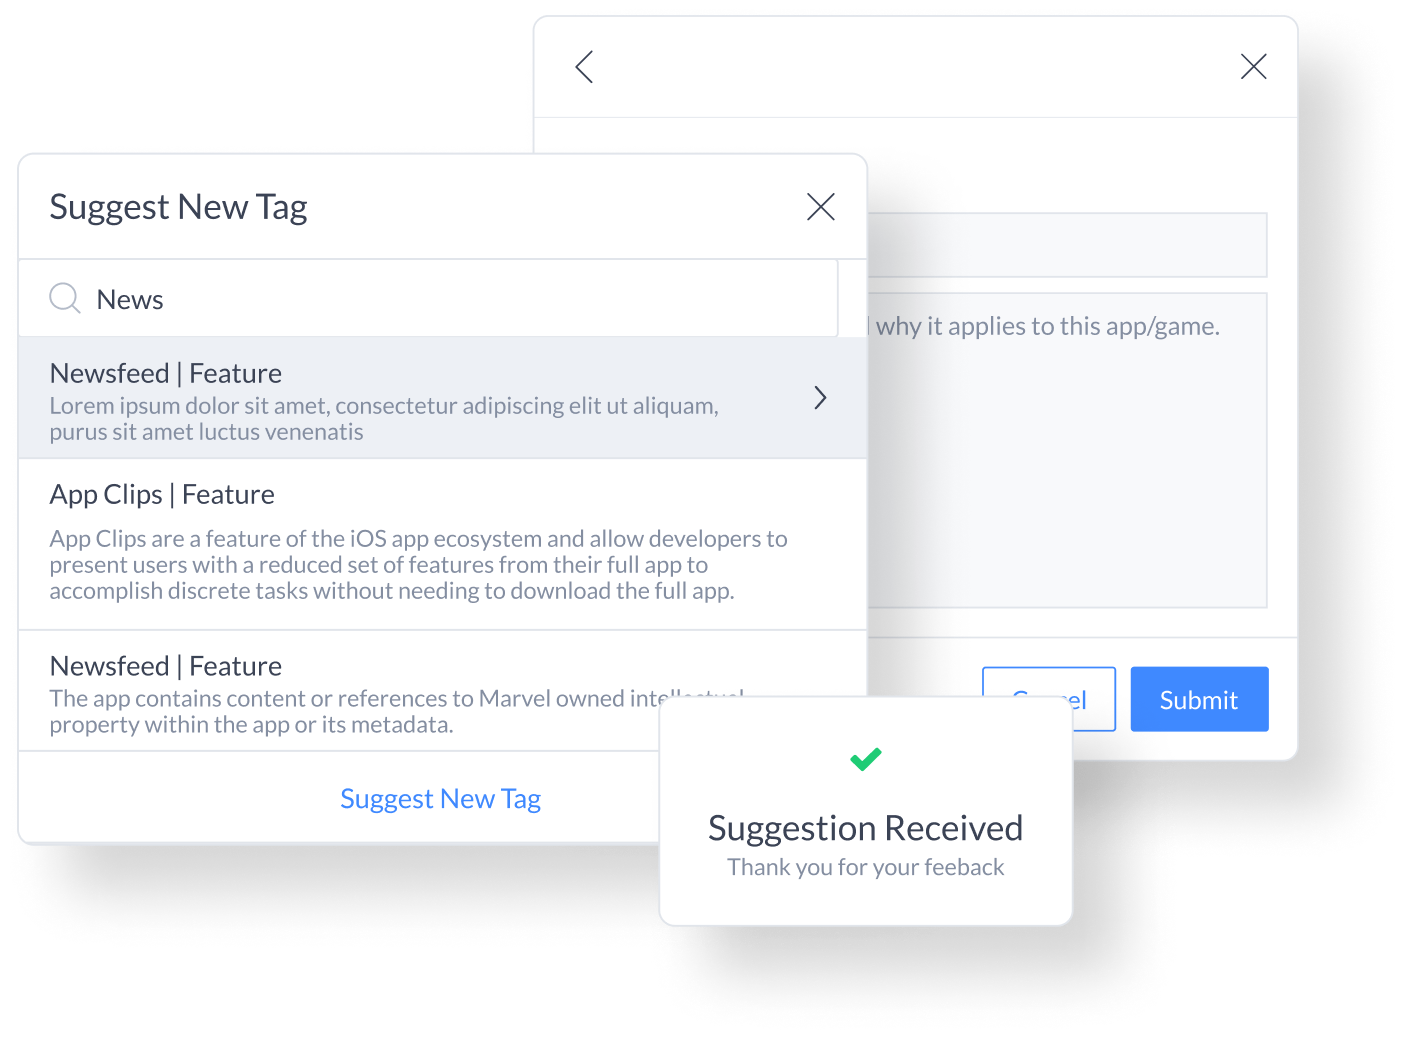 create a completely custom experience by suggesting new tags